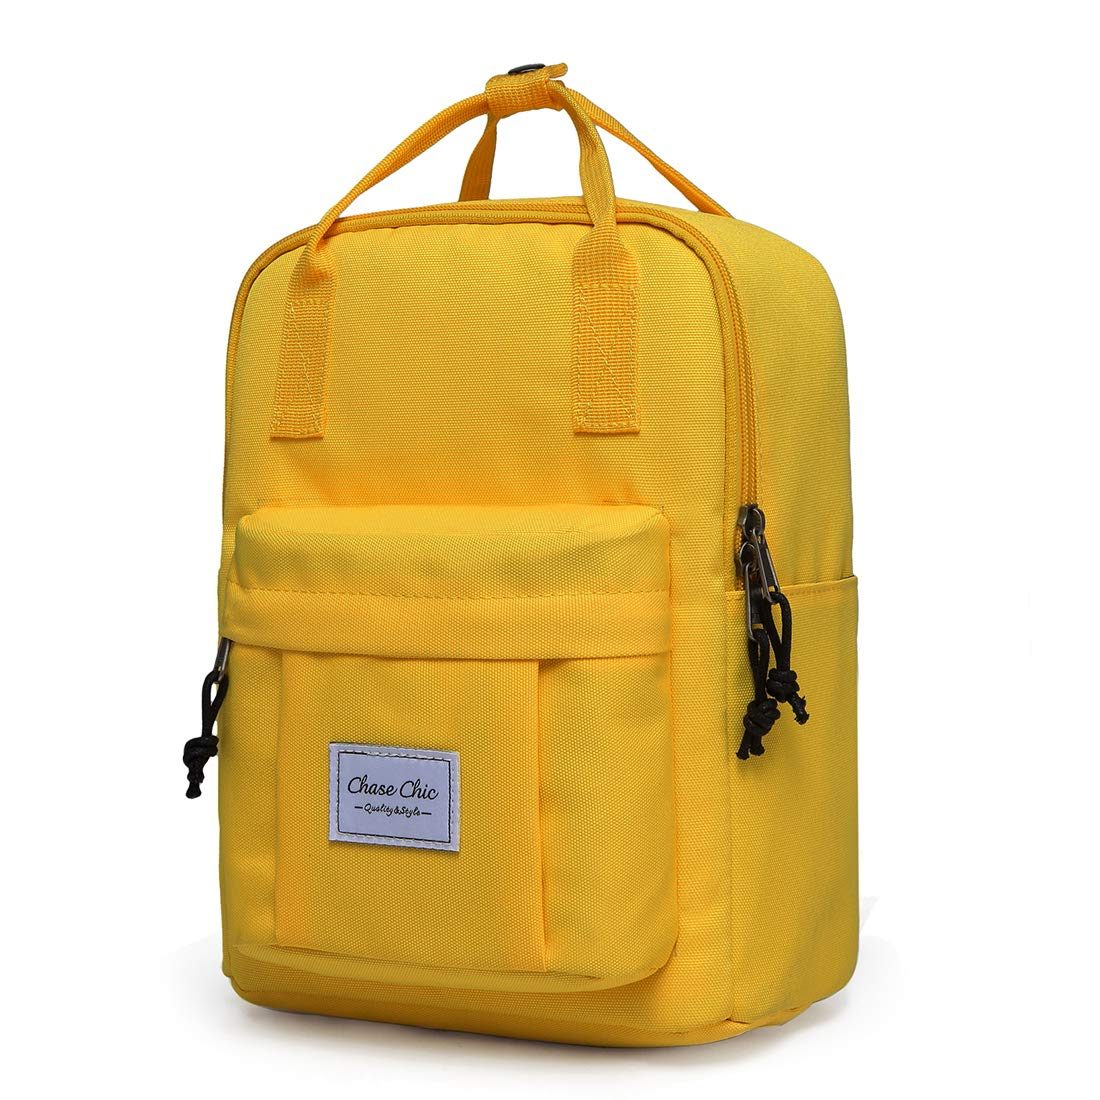 aaa4ea940d2a Kids Backpack,Chasechic Preschool Mini Backpack for Boys and Girls Yellow